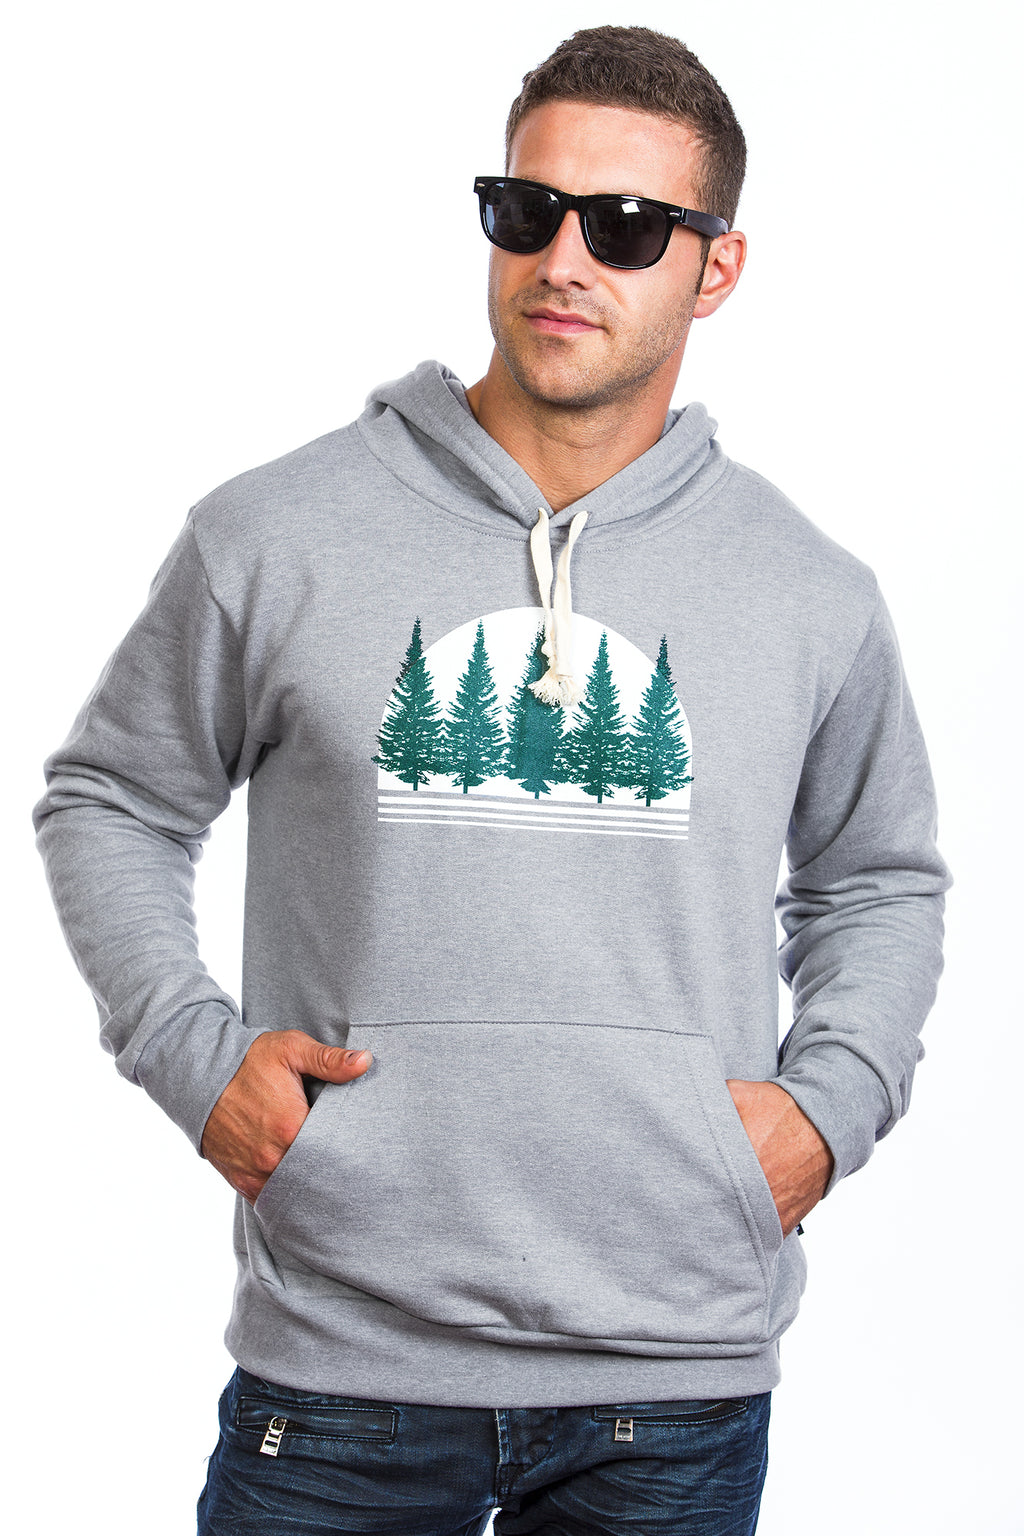 Foret Boreal coton ouate hoodie hoodies canada boreal forest